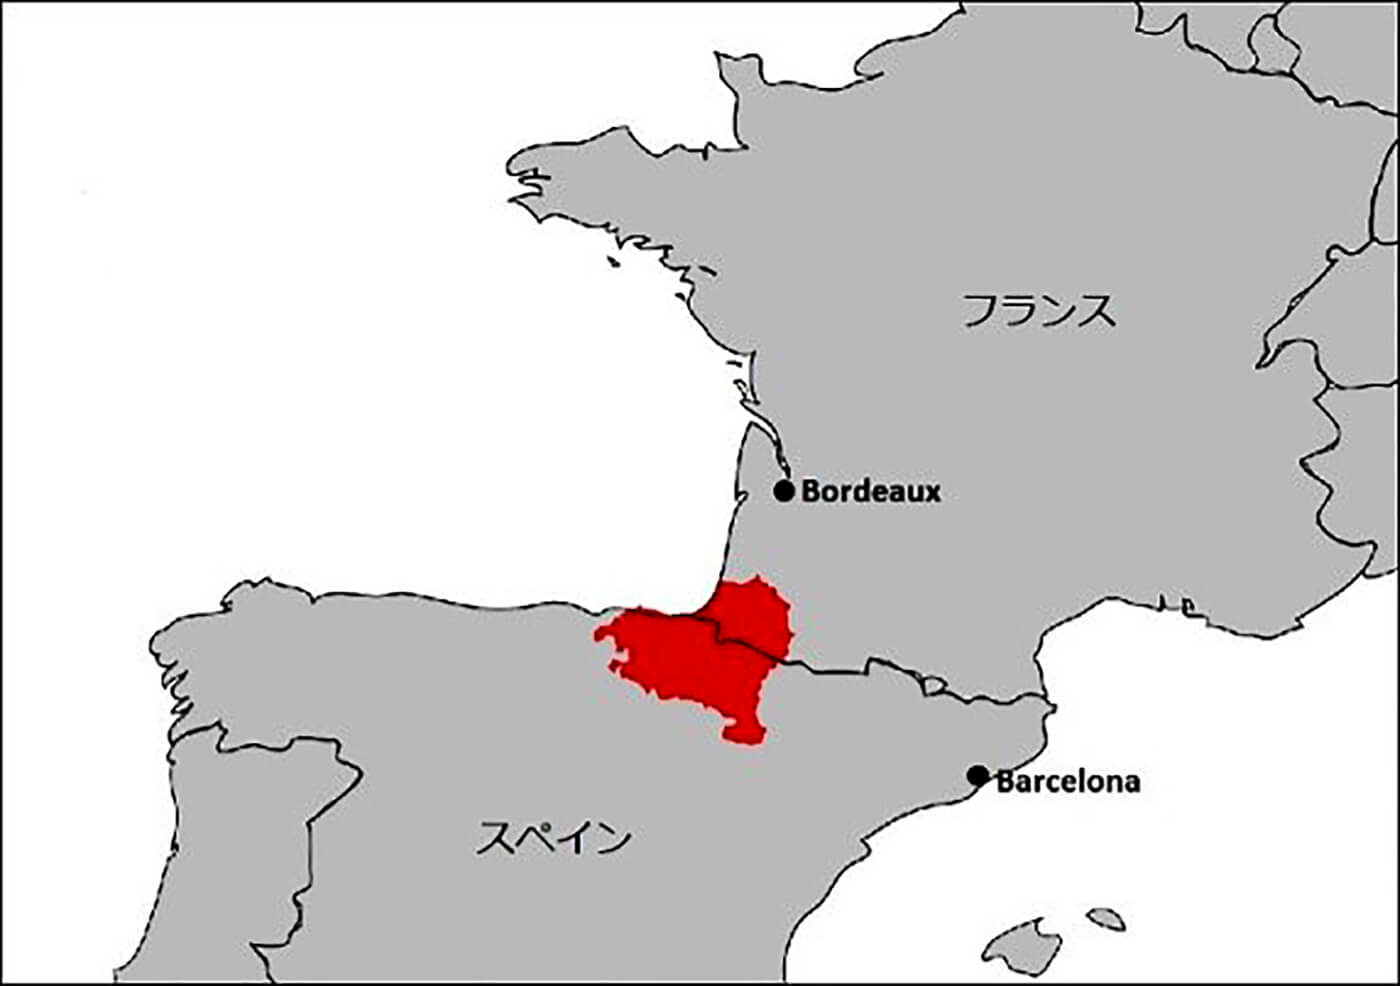 The area marked red is Basque.